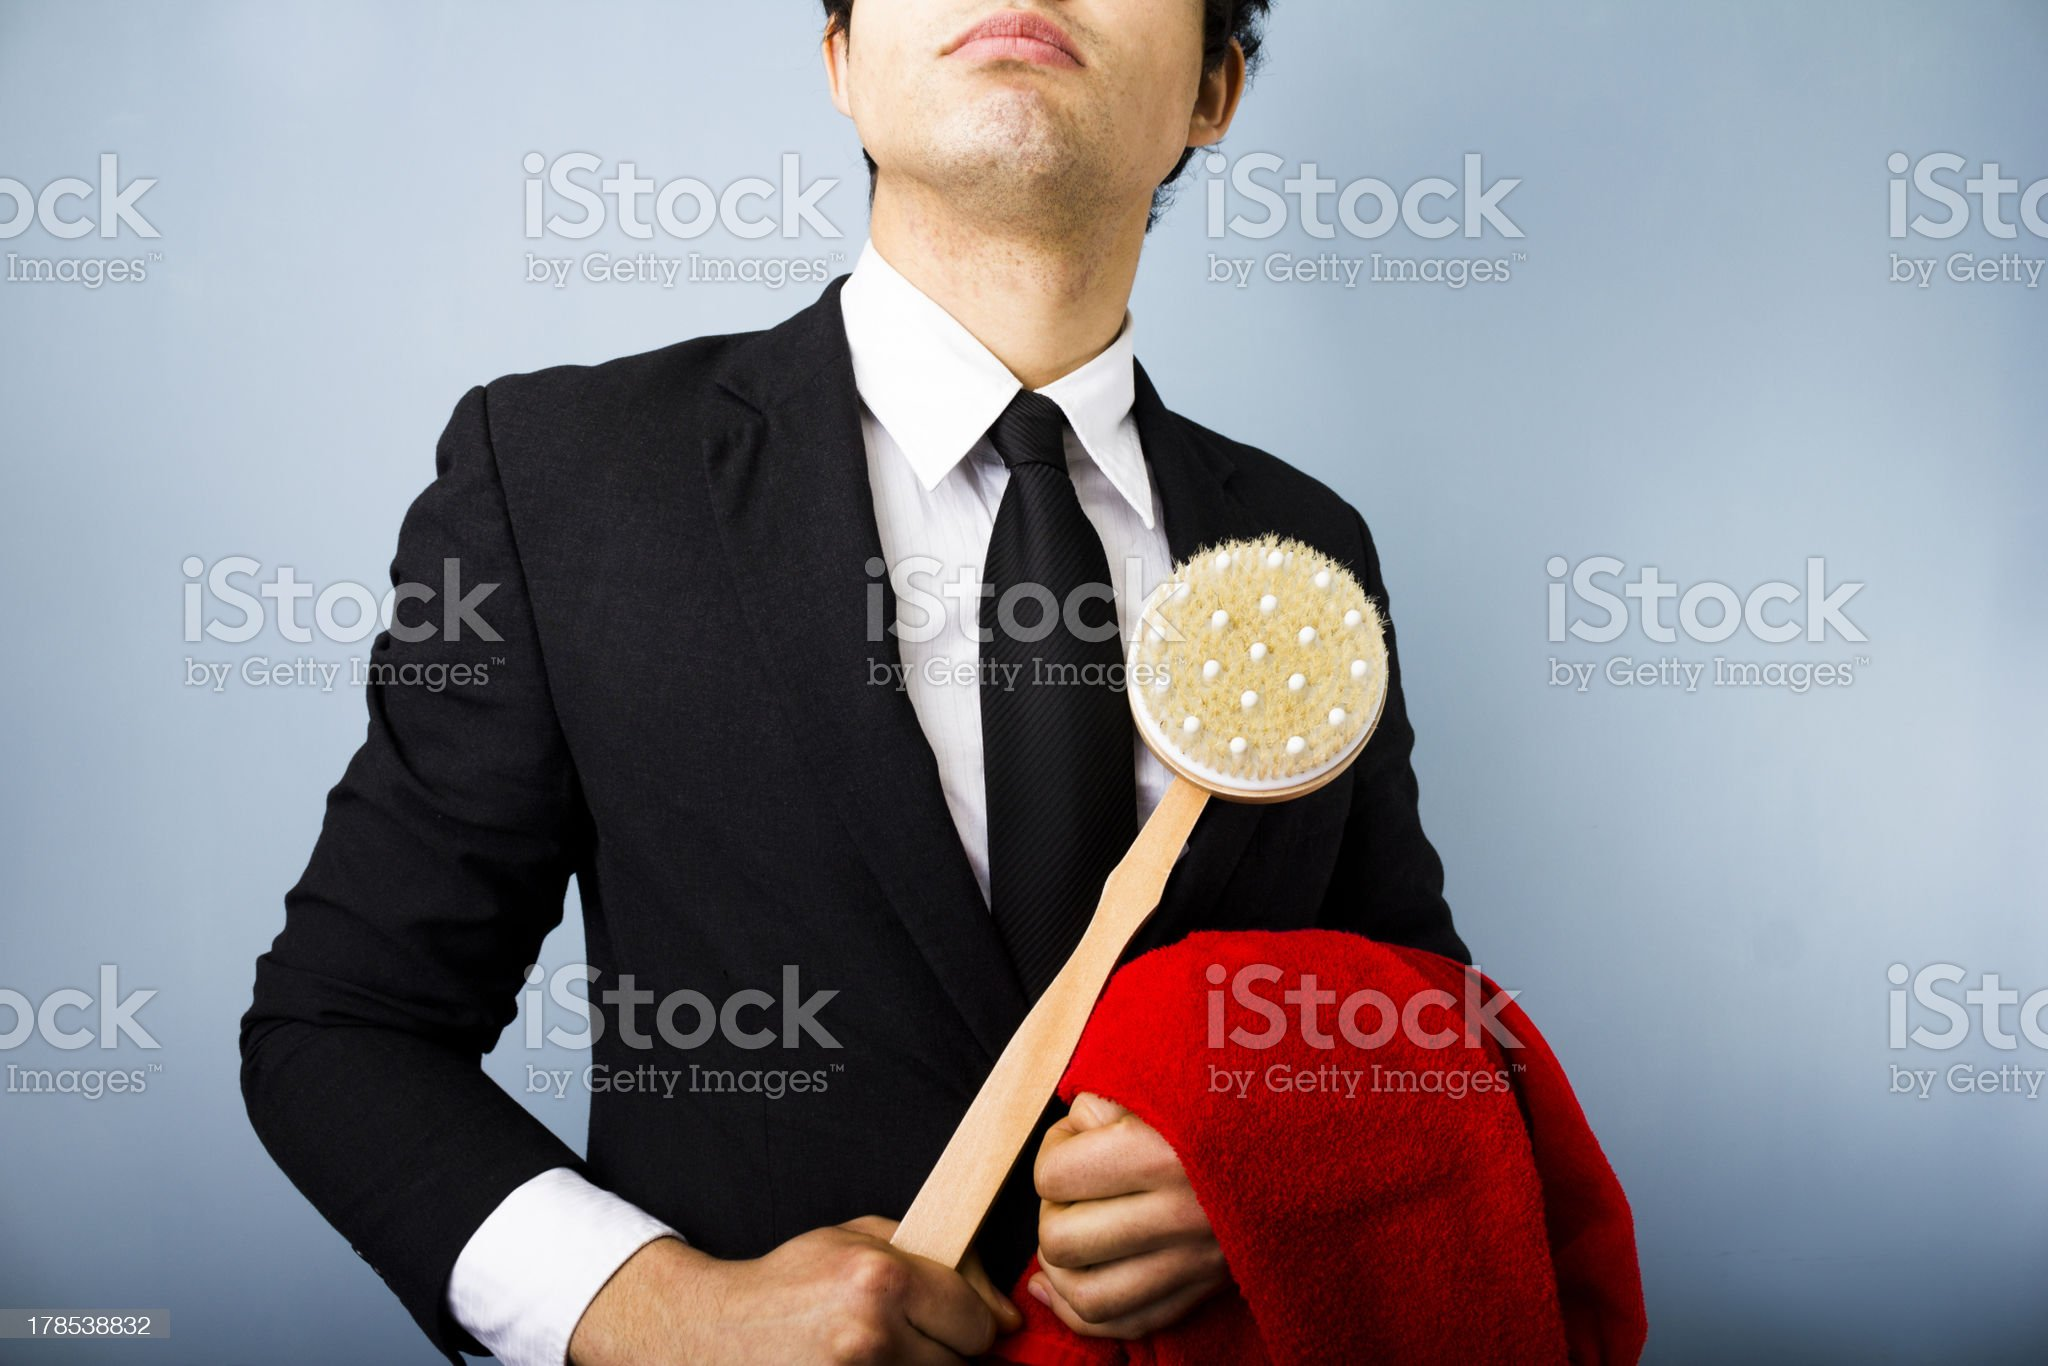 Clean businessman royalty-free stock photo